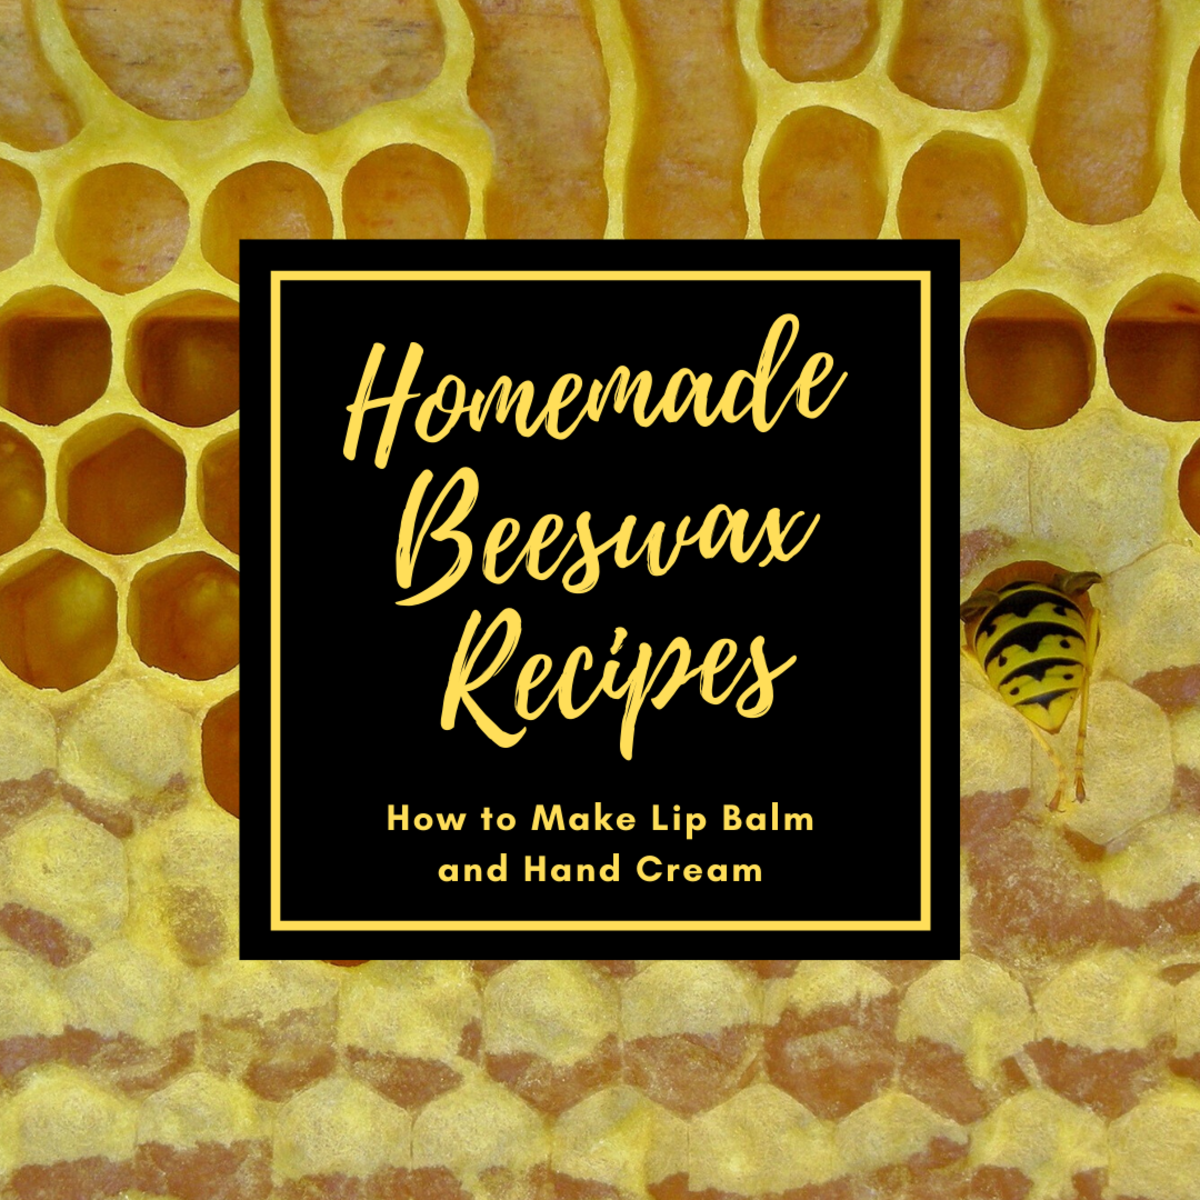 Homemade Beeswax Hand Cream and Lip Balm Recipes